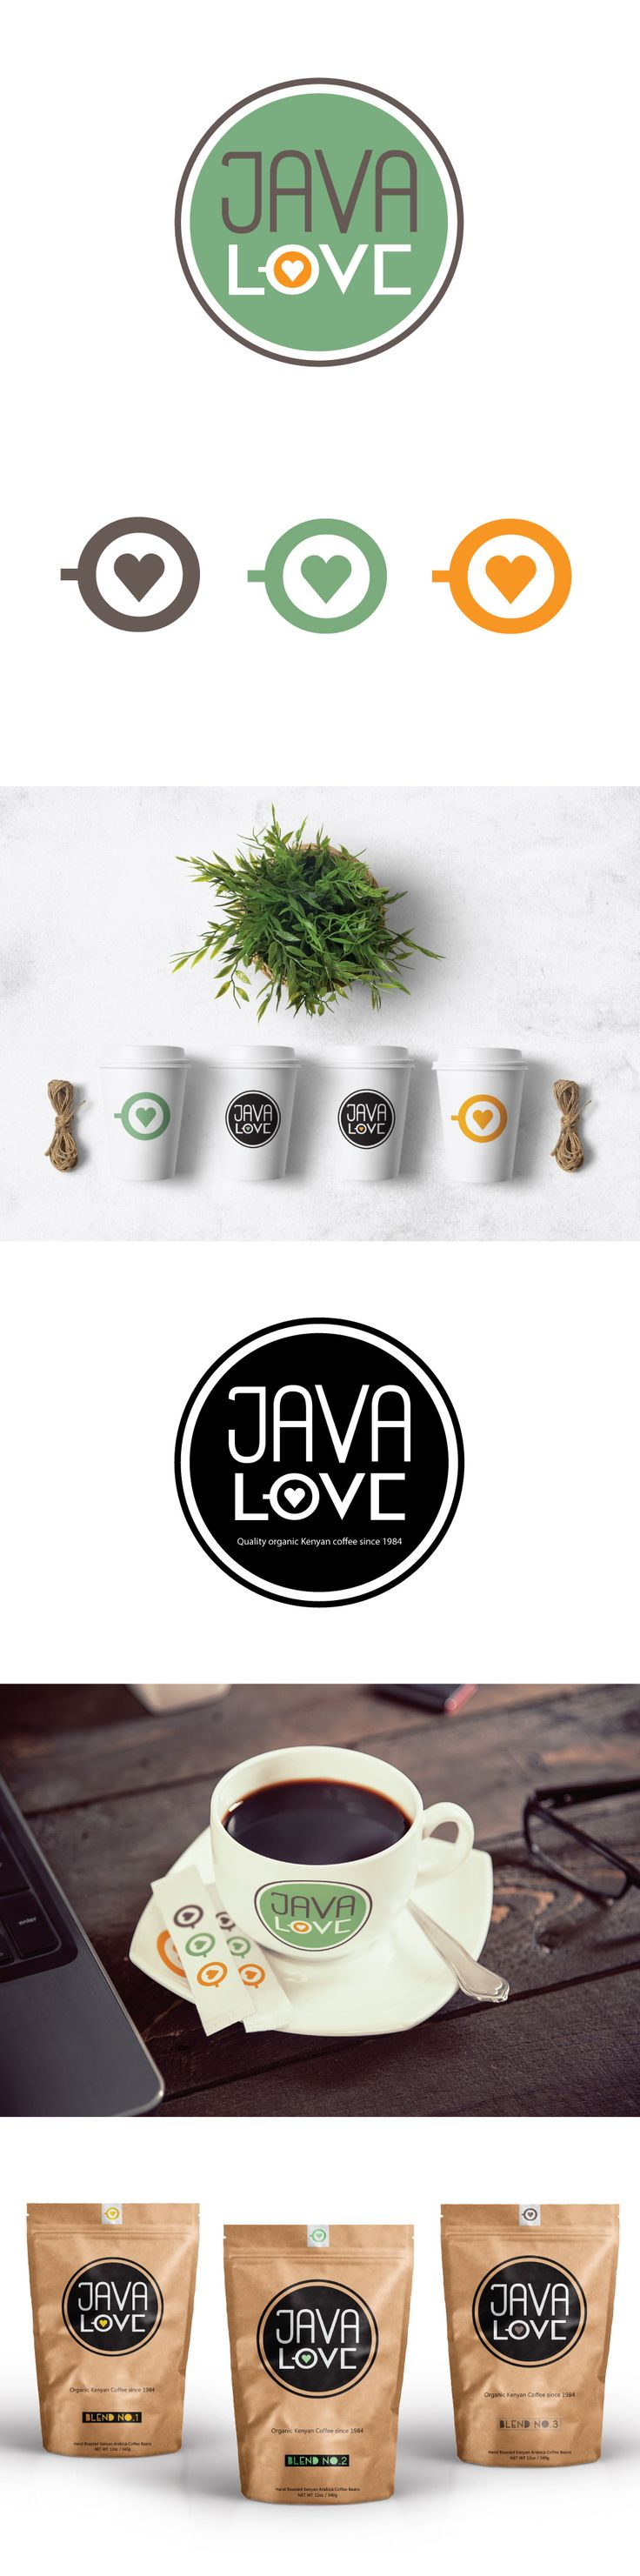 Java Love Identity & Packaging Concept. www.leahcussencreative.com #lccreative #coffee #graphicdesign #packagingdesign